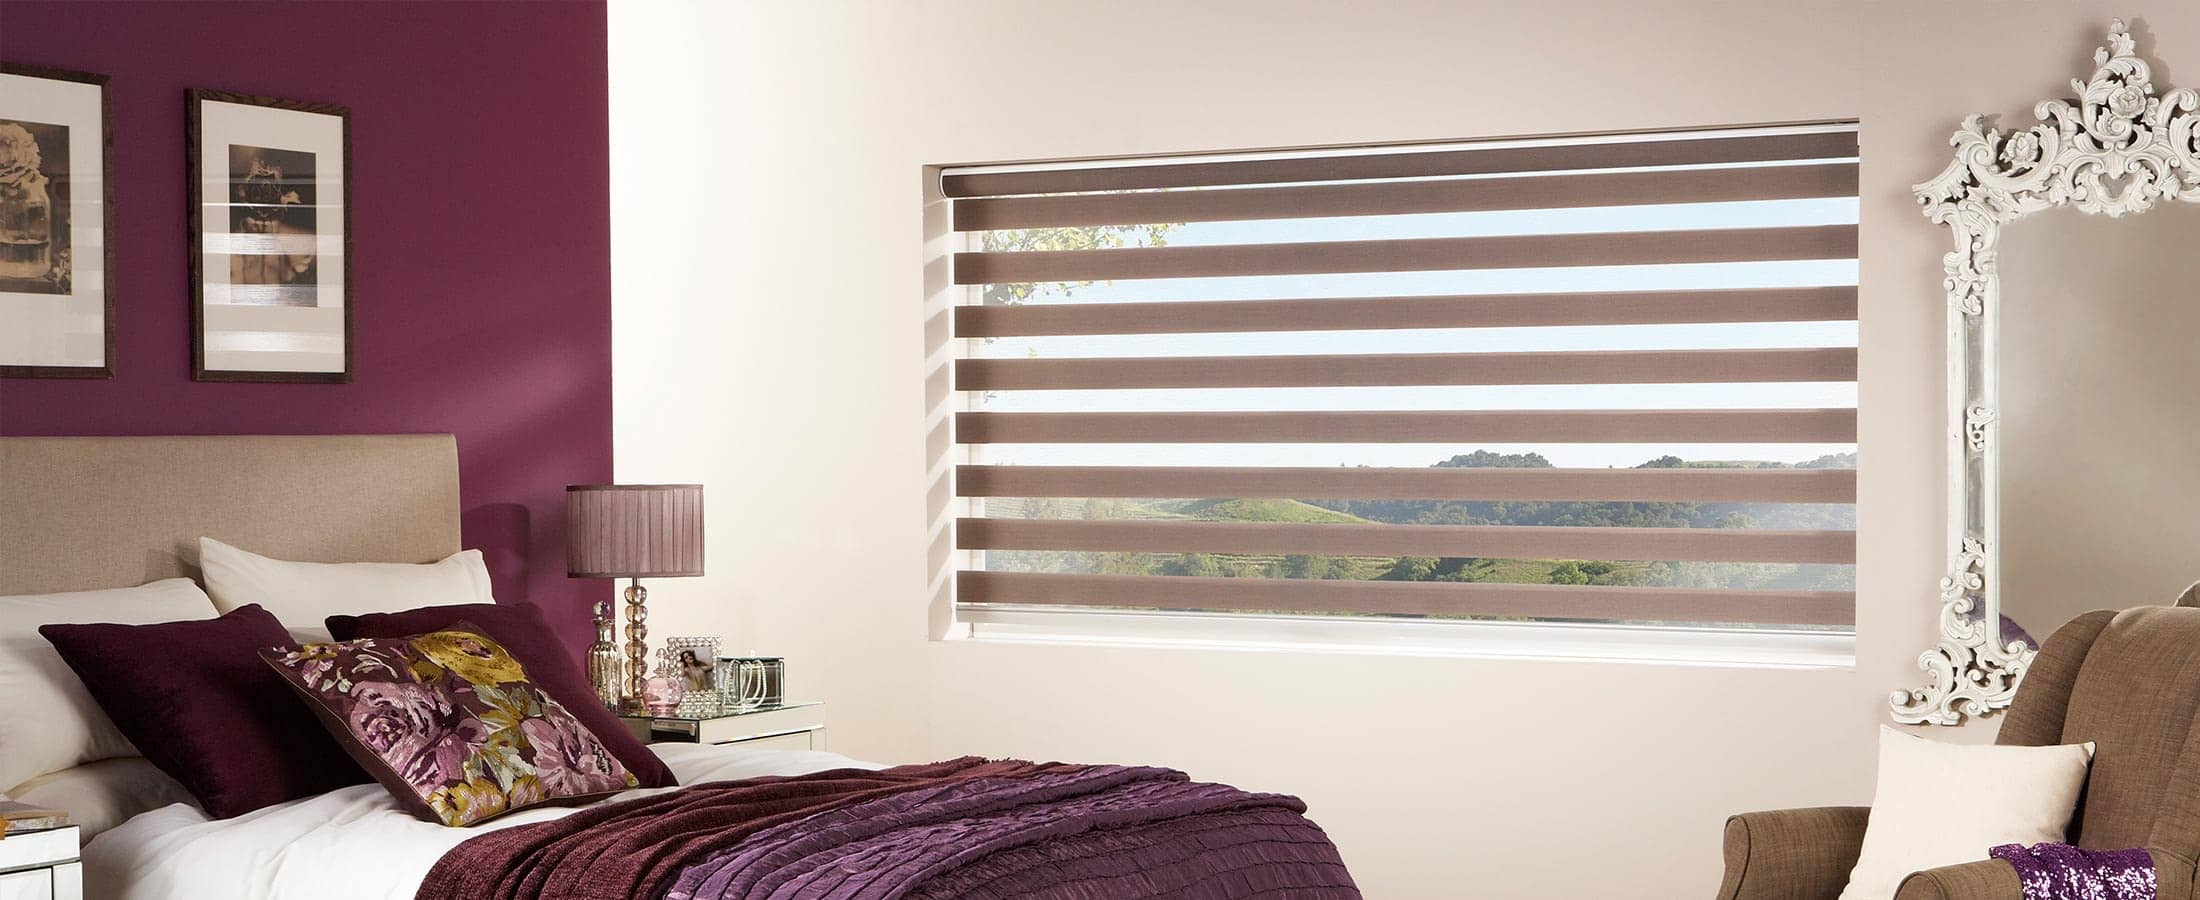 Vision Zebra Blinds fitted in the Bedroom